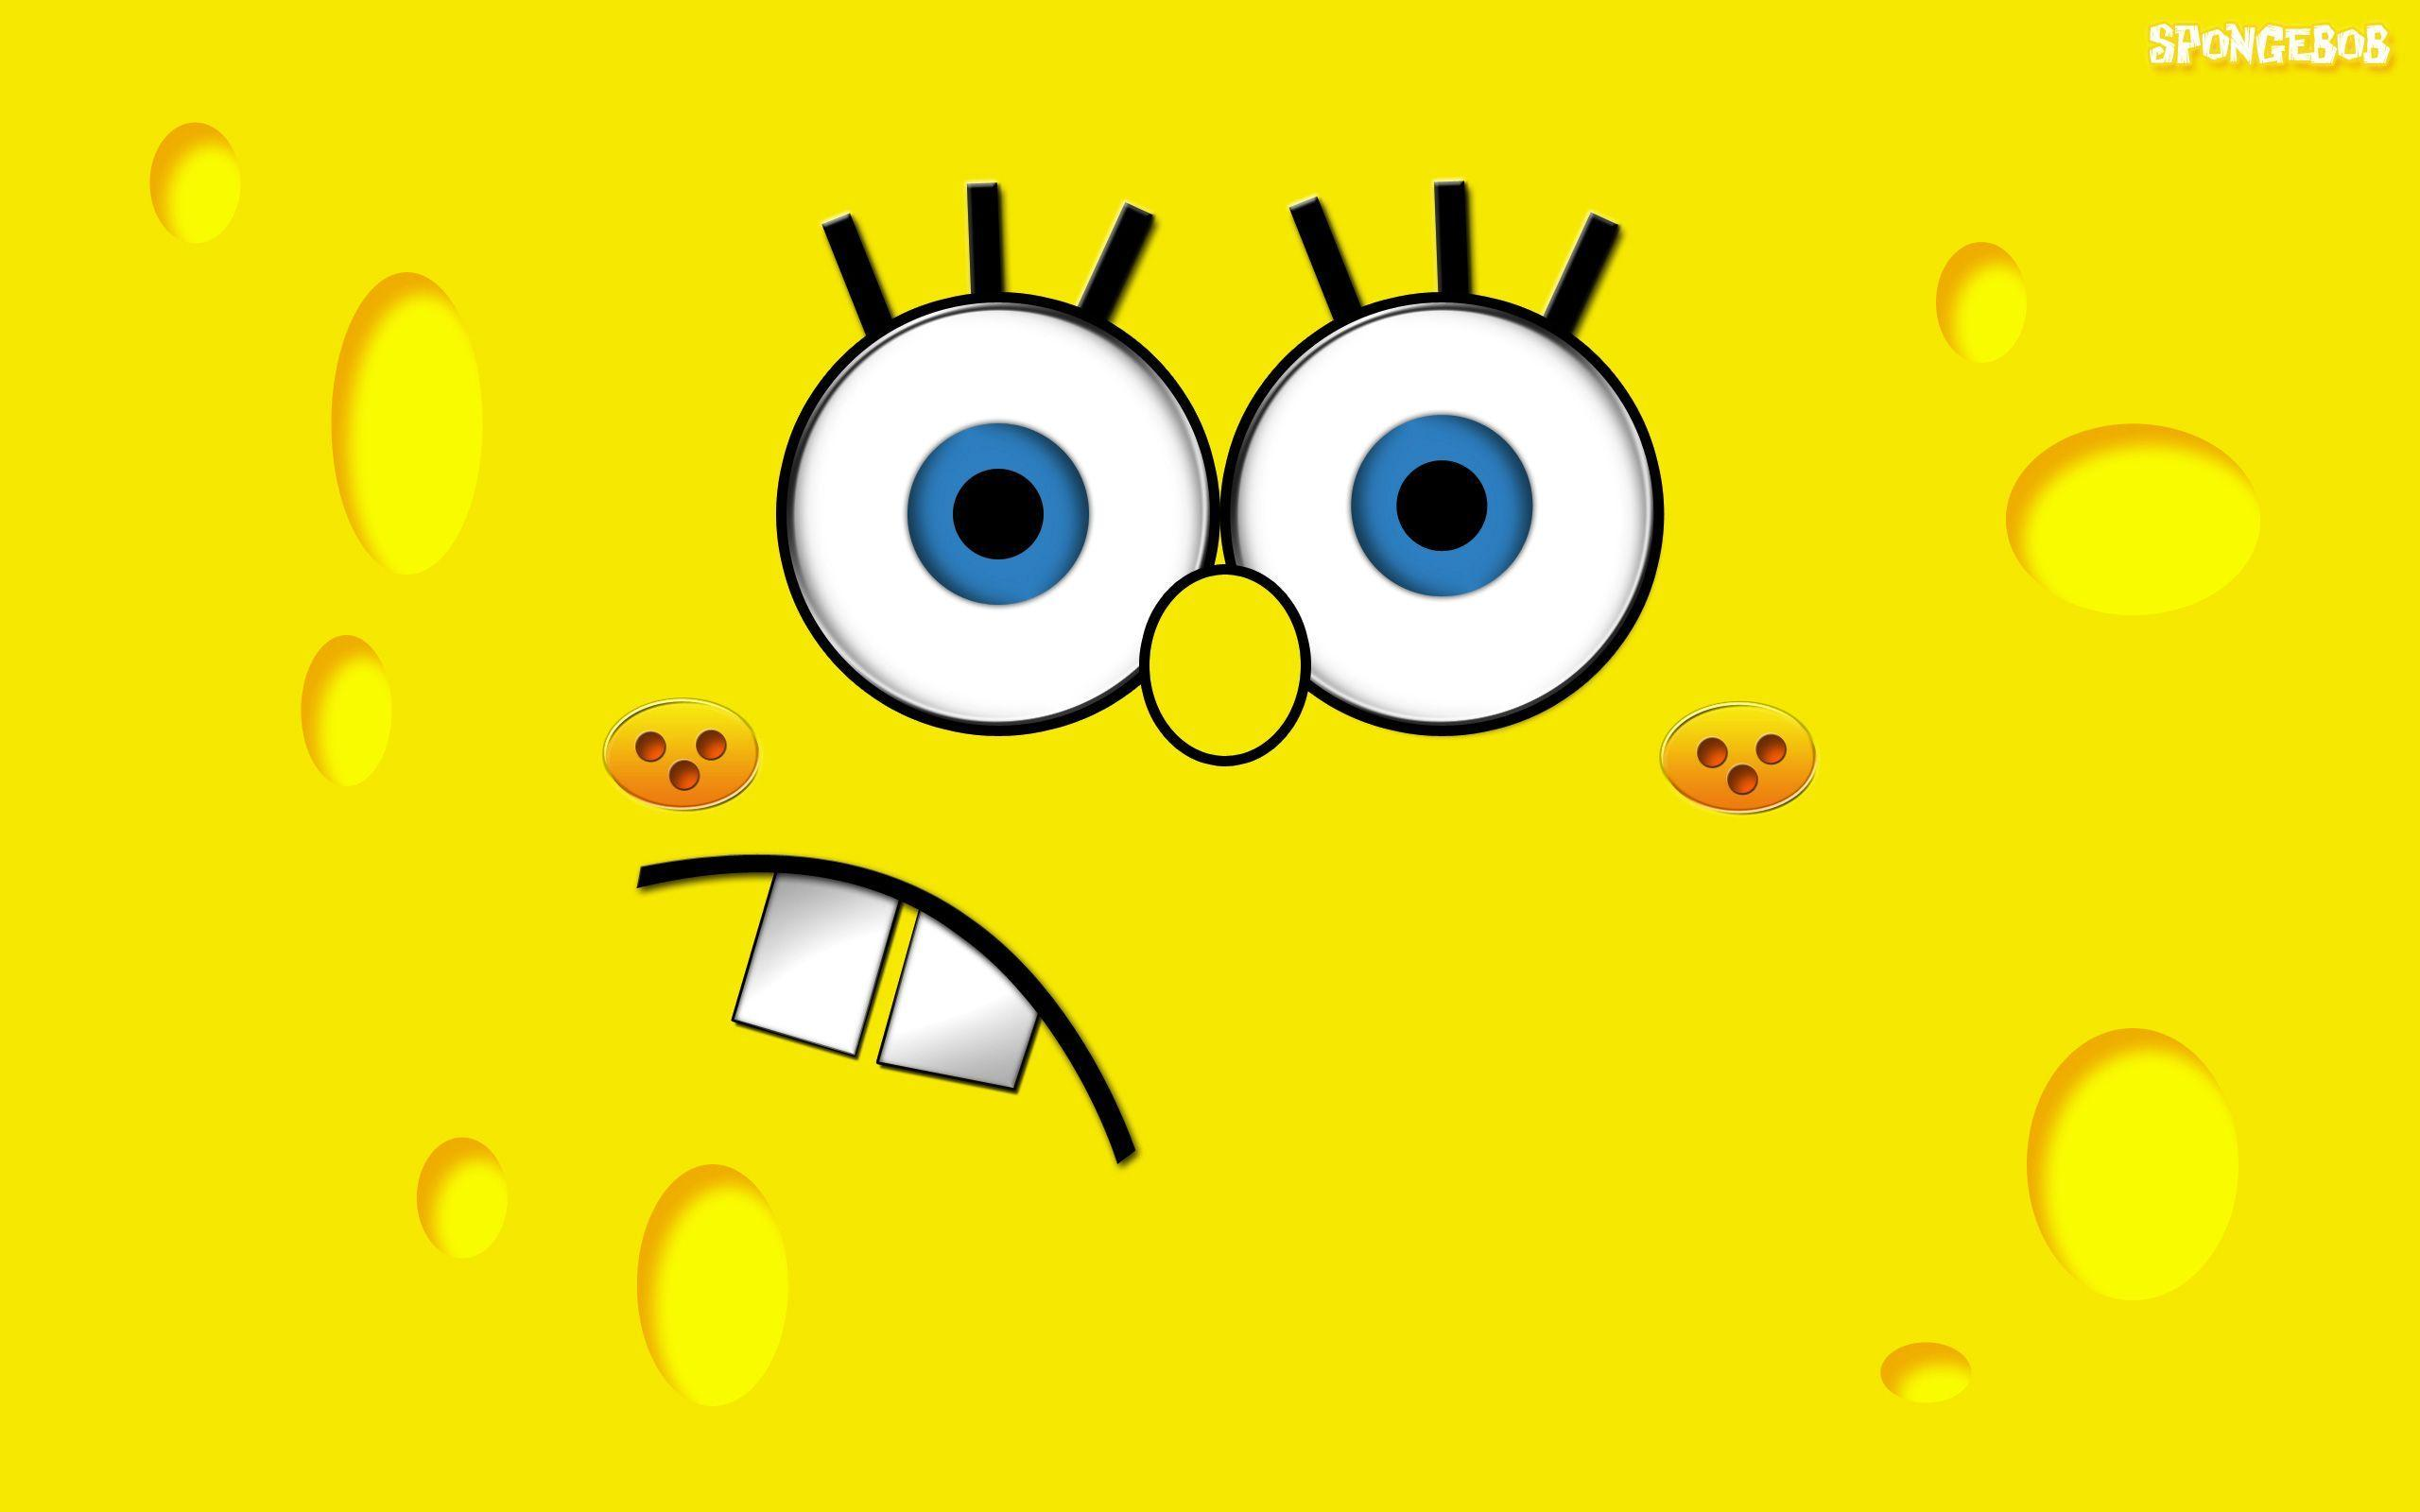 Spongebob Wallpapers - Full HD wallpaper search - page 3